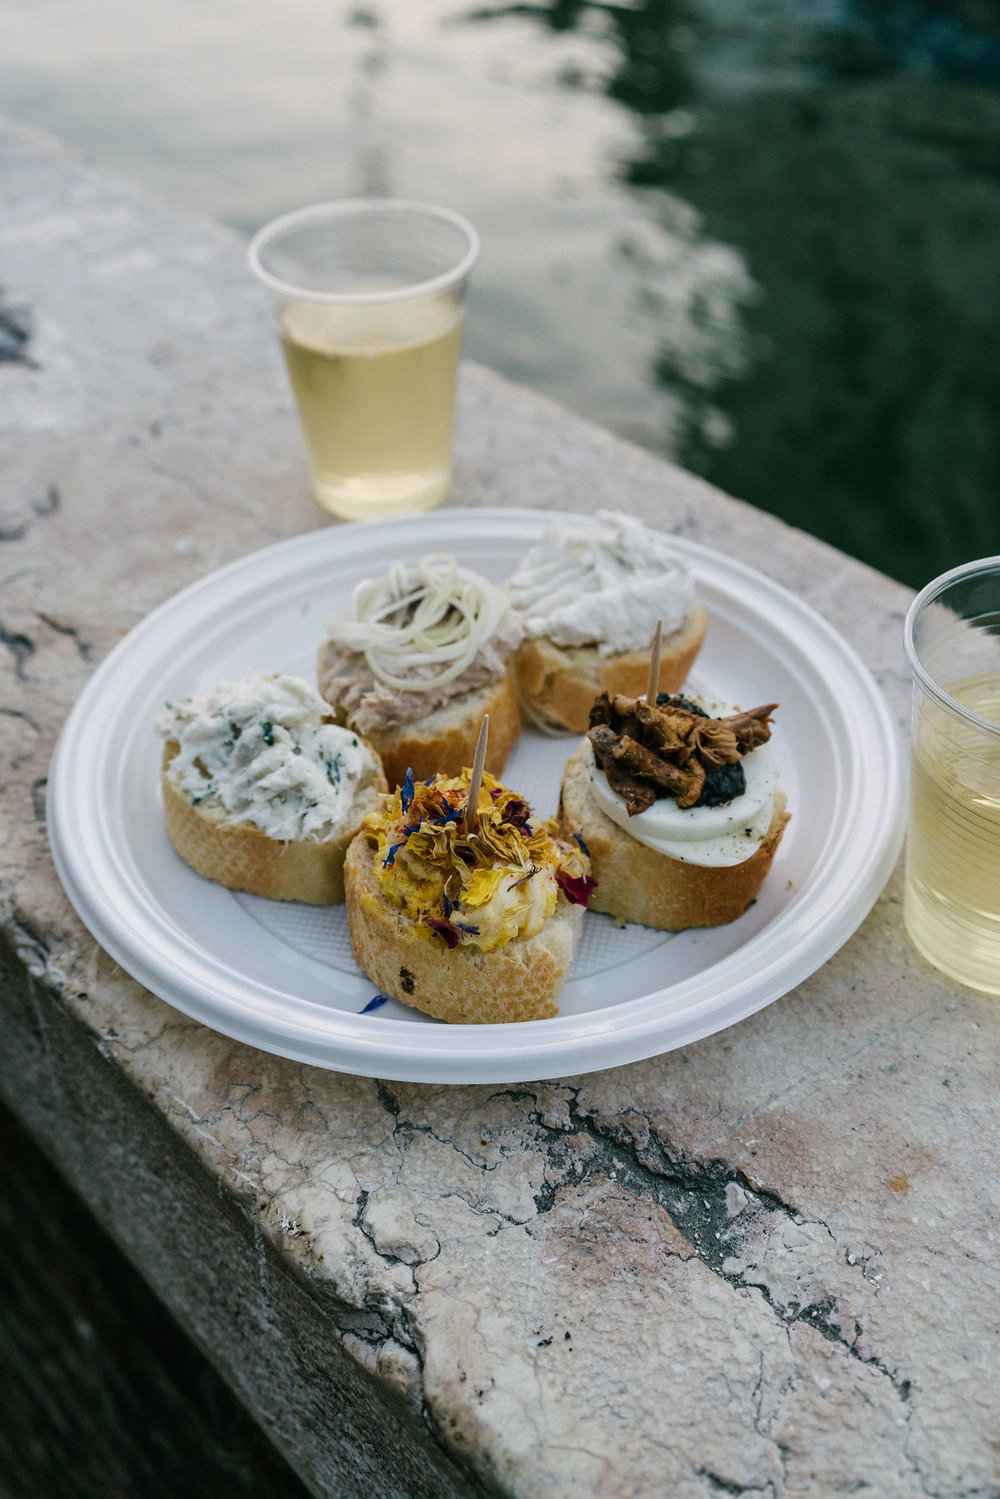 Cicchetti (Venetian small snacks) and wine outside by the canal